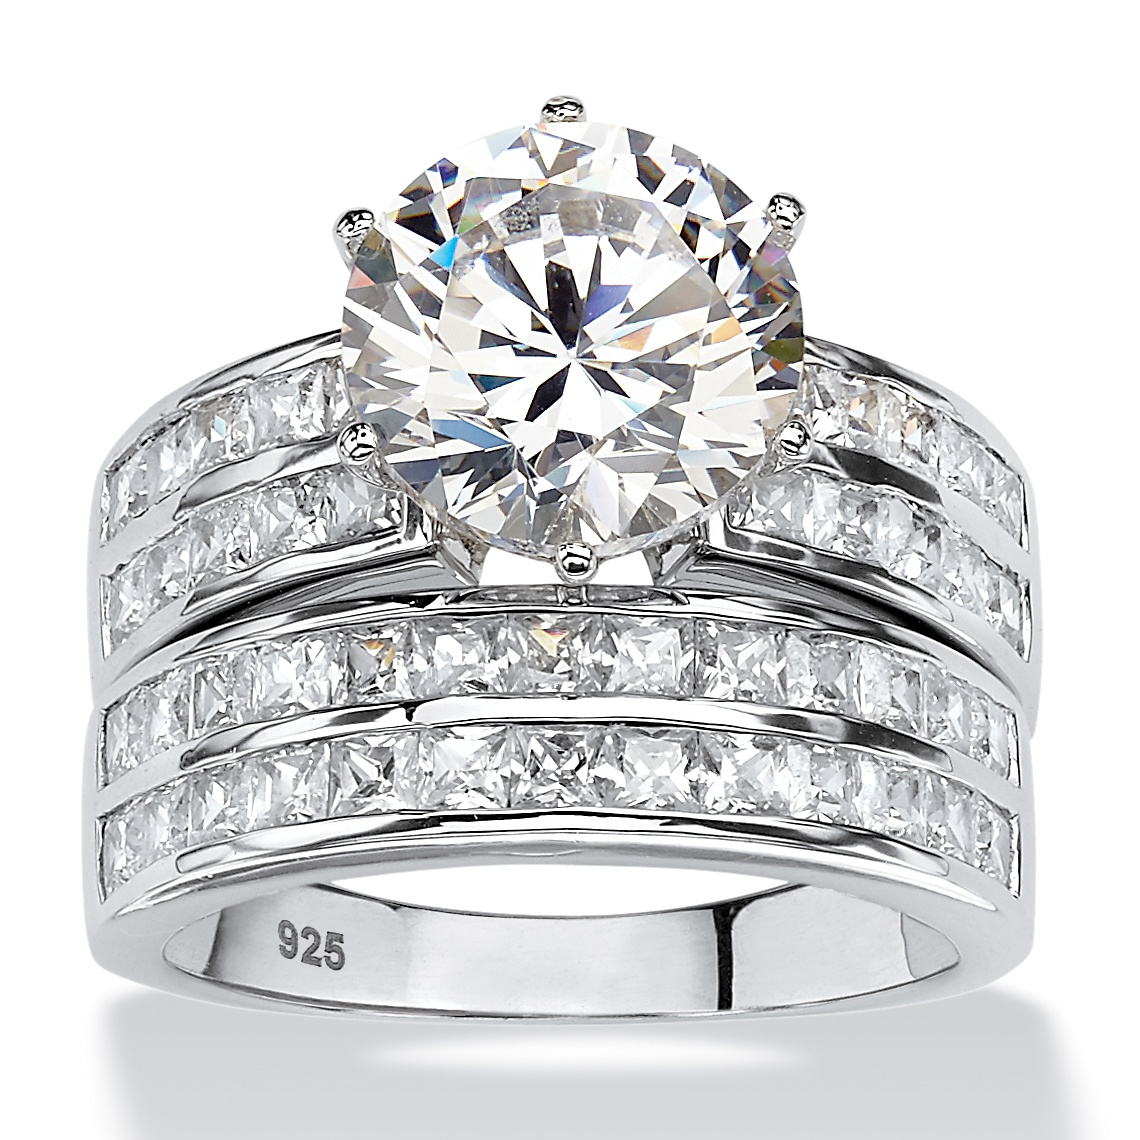 5.84 TCW Round Cubic Zirconia Two-Piece Channel Bridal Ring Set in Platinum over Sterling Silver by PalmBeach Jewelry